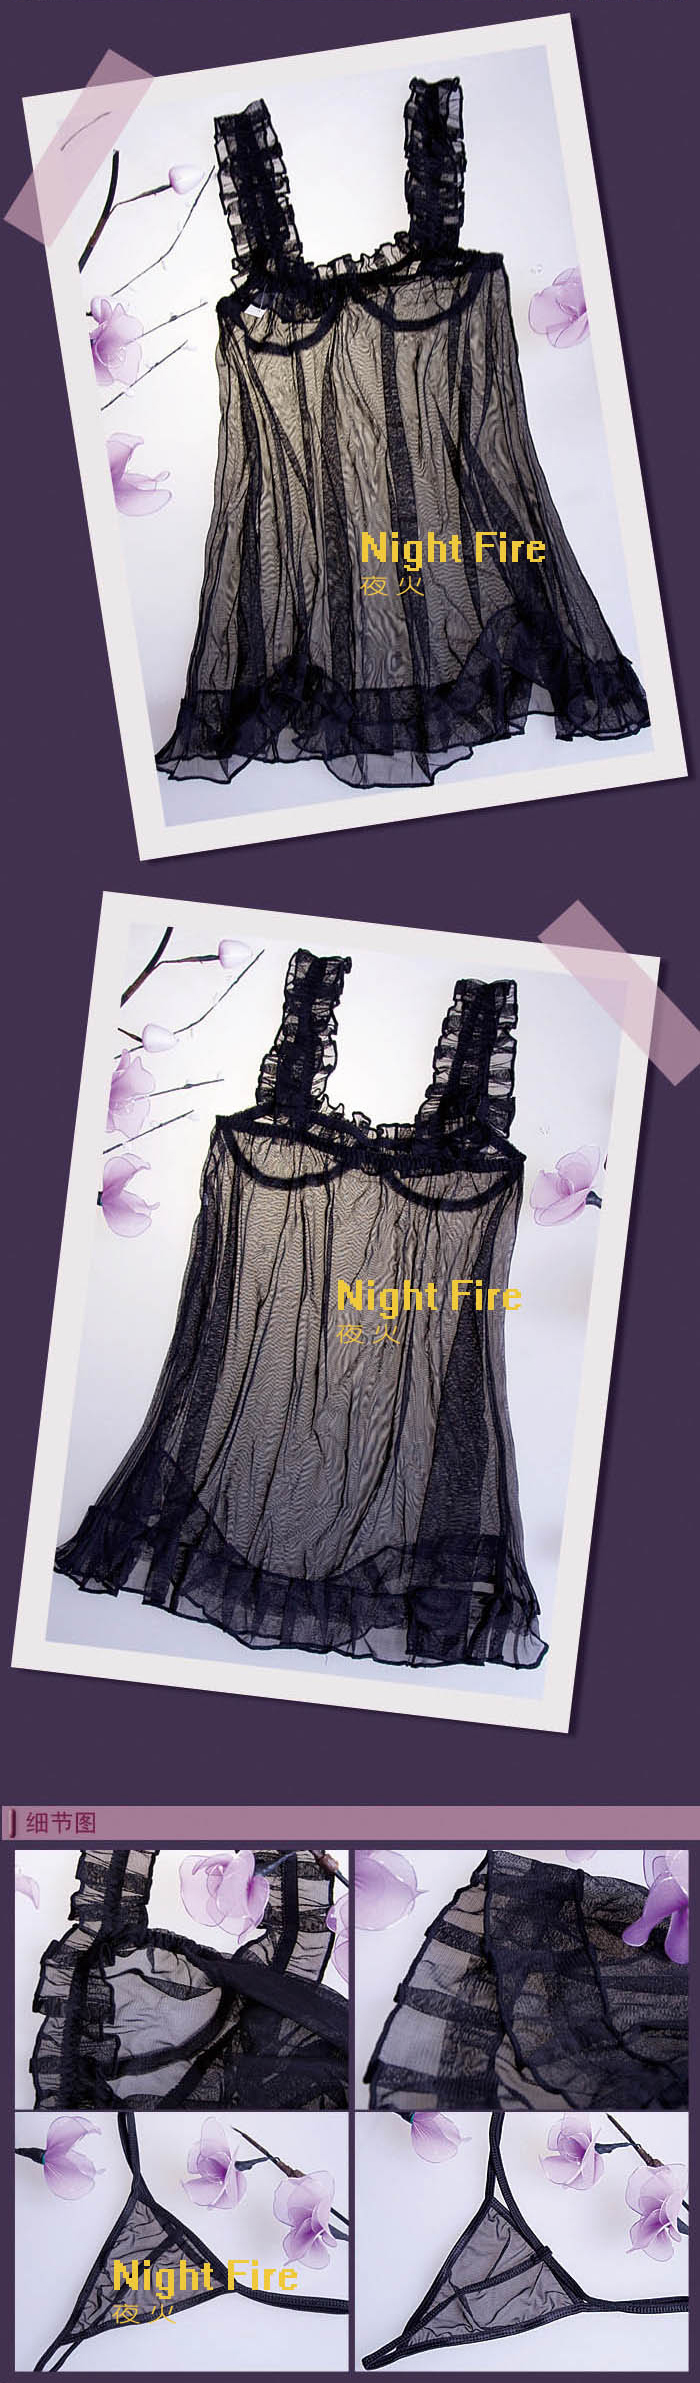 Genuine night fire sexy lingerie temptations perspective lace sexy black suspender skirt suit Passion 2227